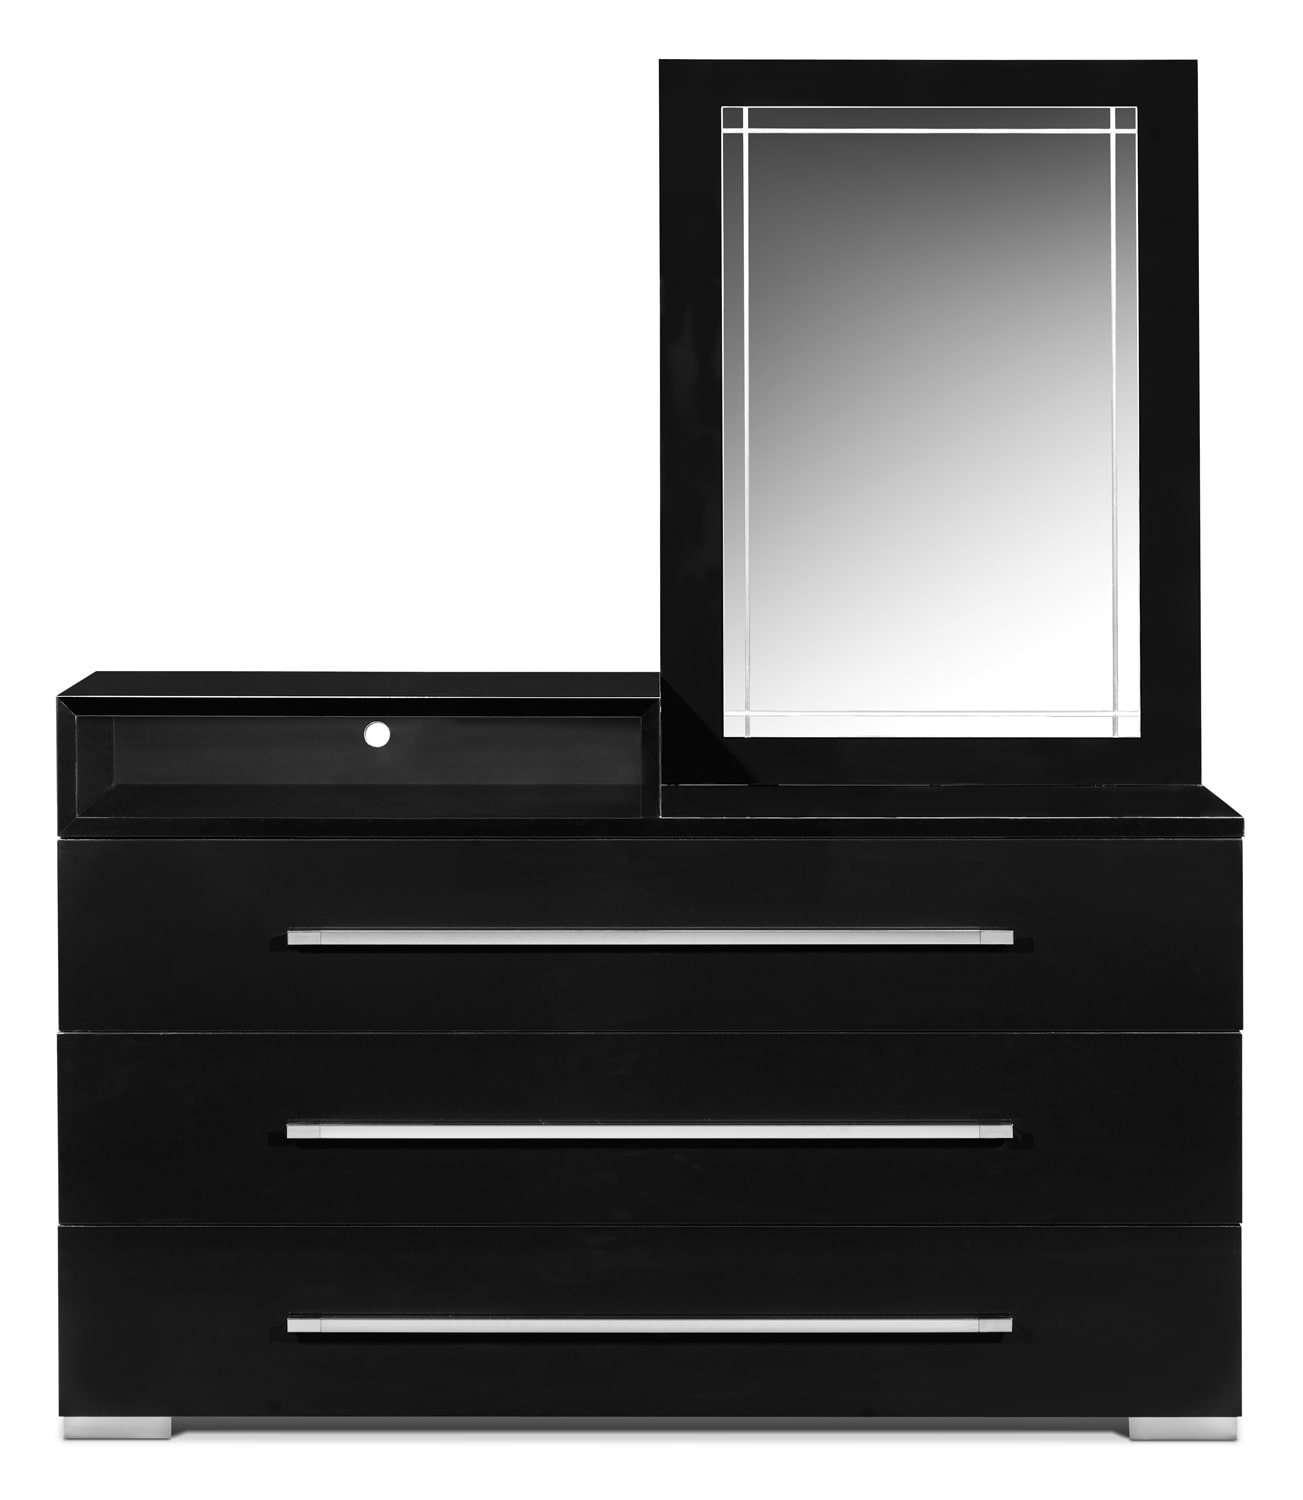 Dimora Dresser with Deck and Mirror - Black by Factory Outlet